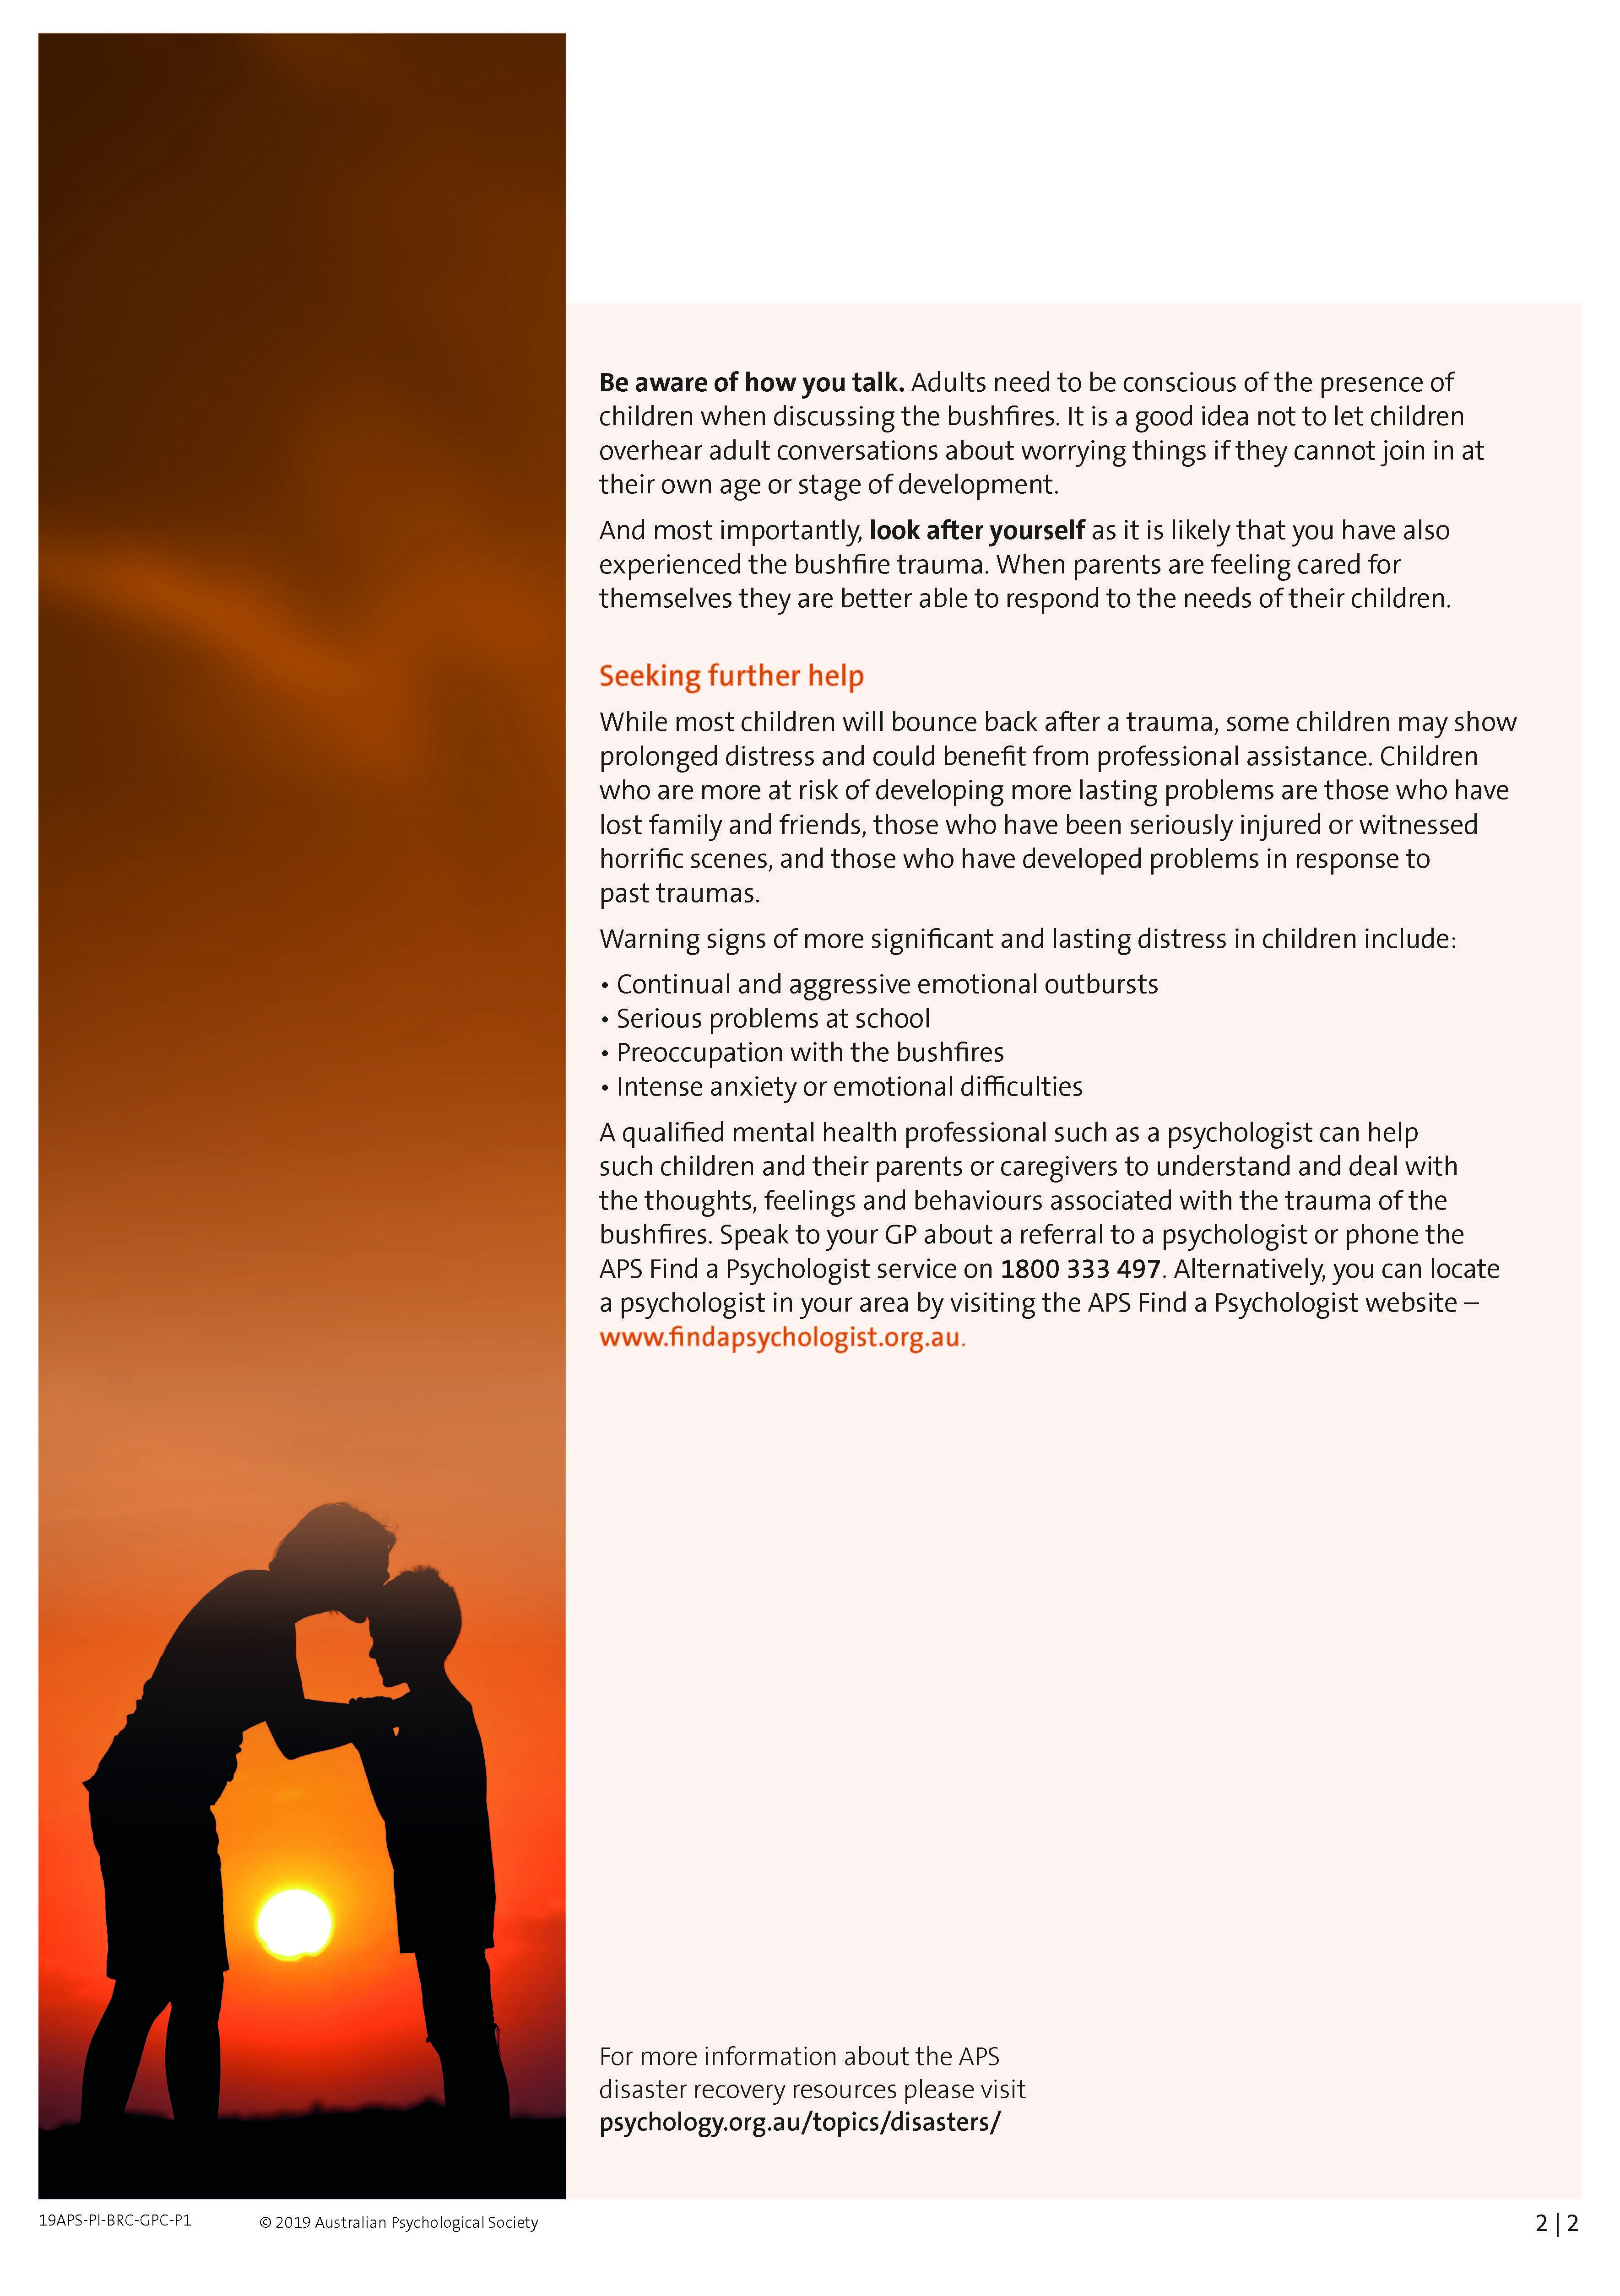 APS Helping-children-affected-bushfires (1)_Page_2